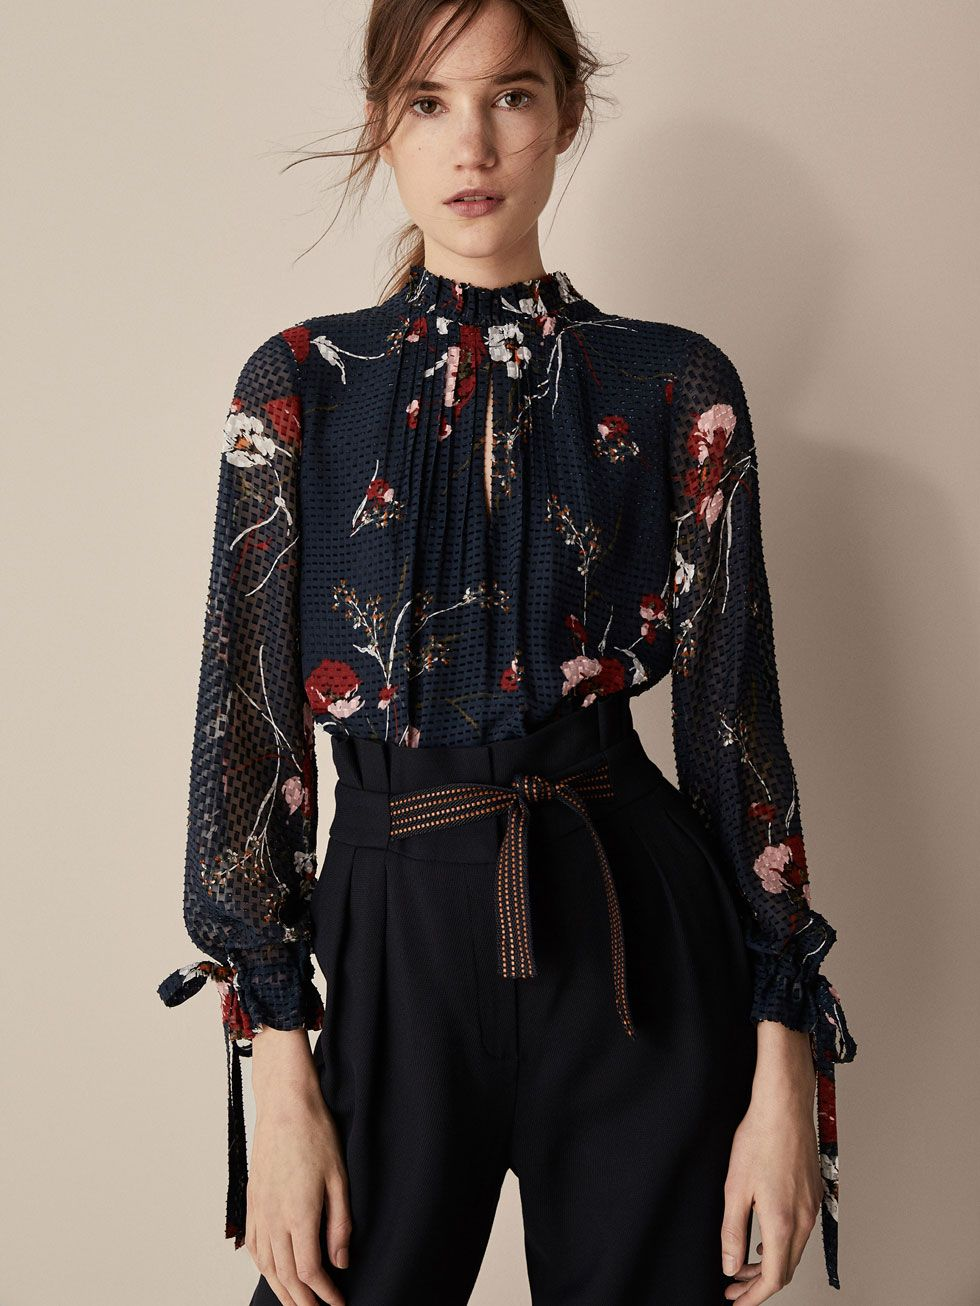 8b712906850 Fall Winter 2017 Women´s SILK FIL COUPÉ SHIRT WITH FLORAL PRINT at Massimo  Dutti for 59.95. Effortless elegance!